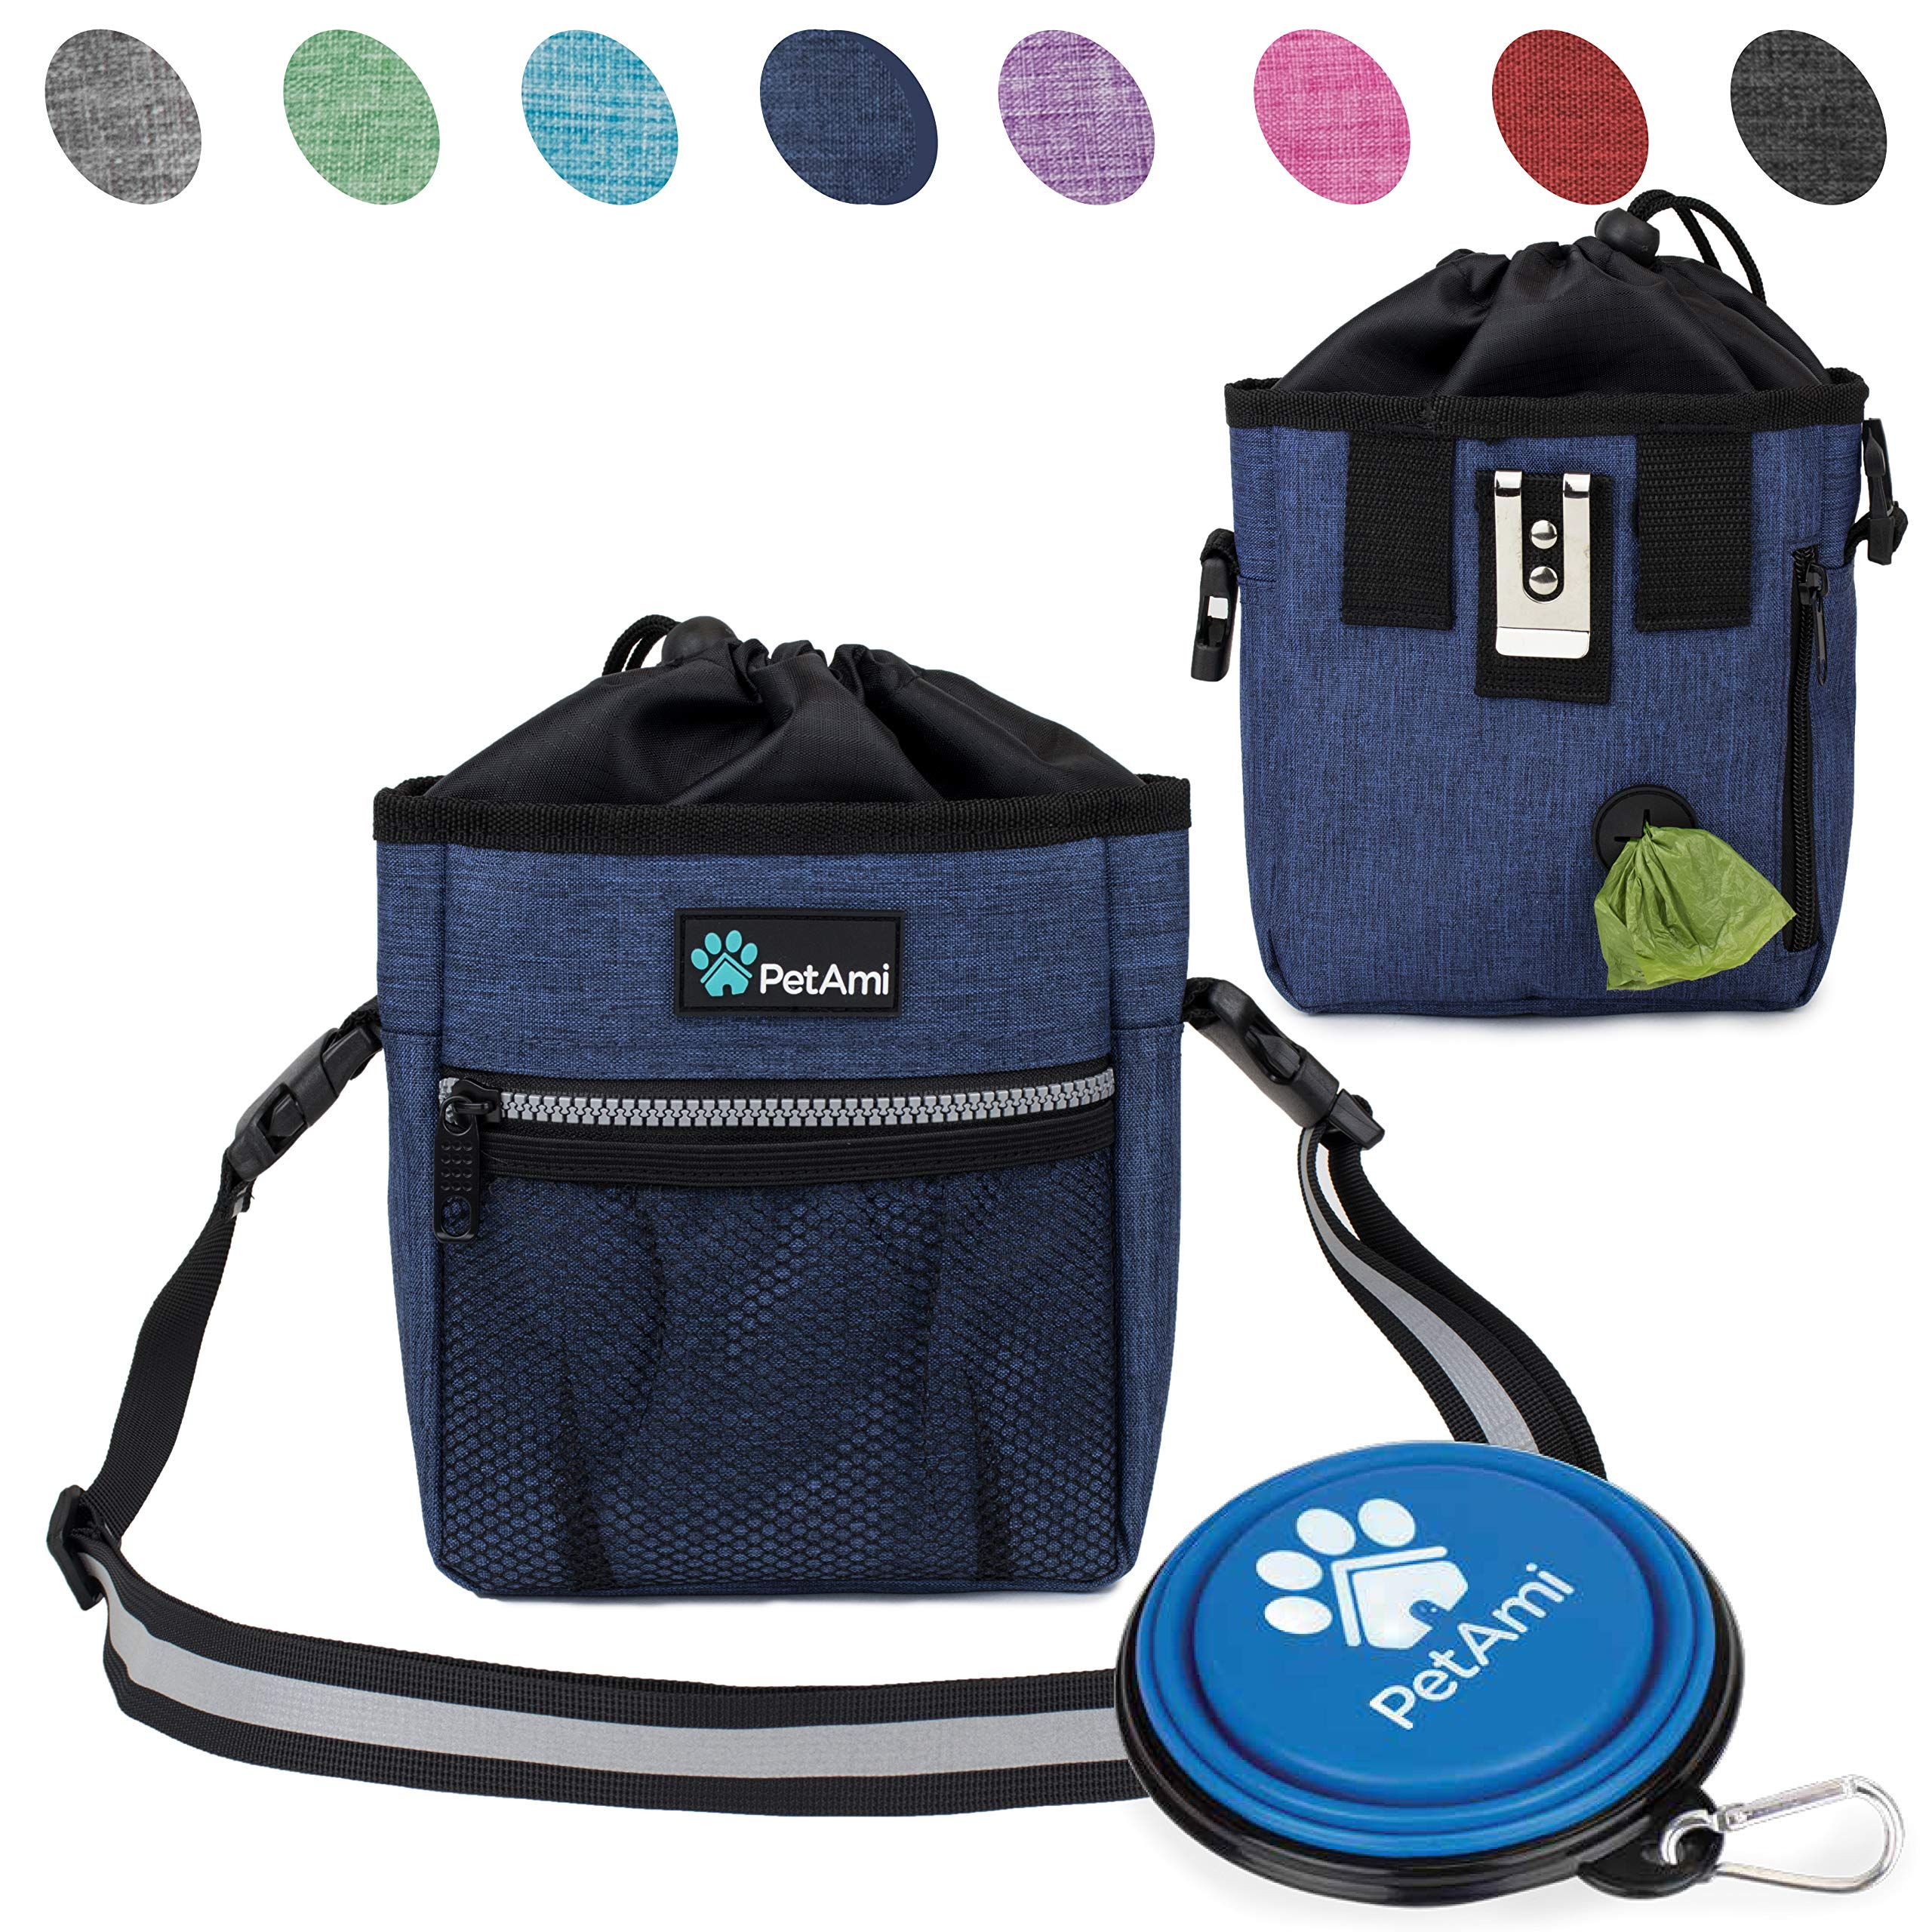 PetAmi Deluxe Dog Training Pouch with Shoulder/Waist Strap and Built-in Poop Bag Dispenser   Dog Treat Training Bag for Treats, Kibbles, Pet Toys   Collapsible Food/Water Bowl Included (Heather Navy)